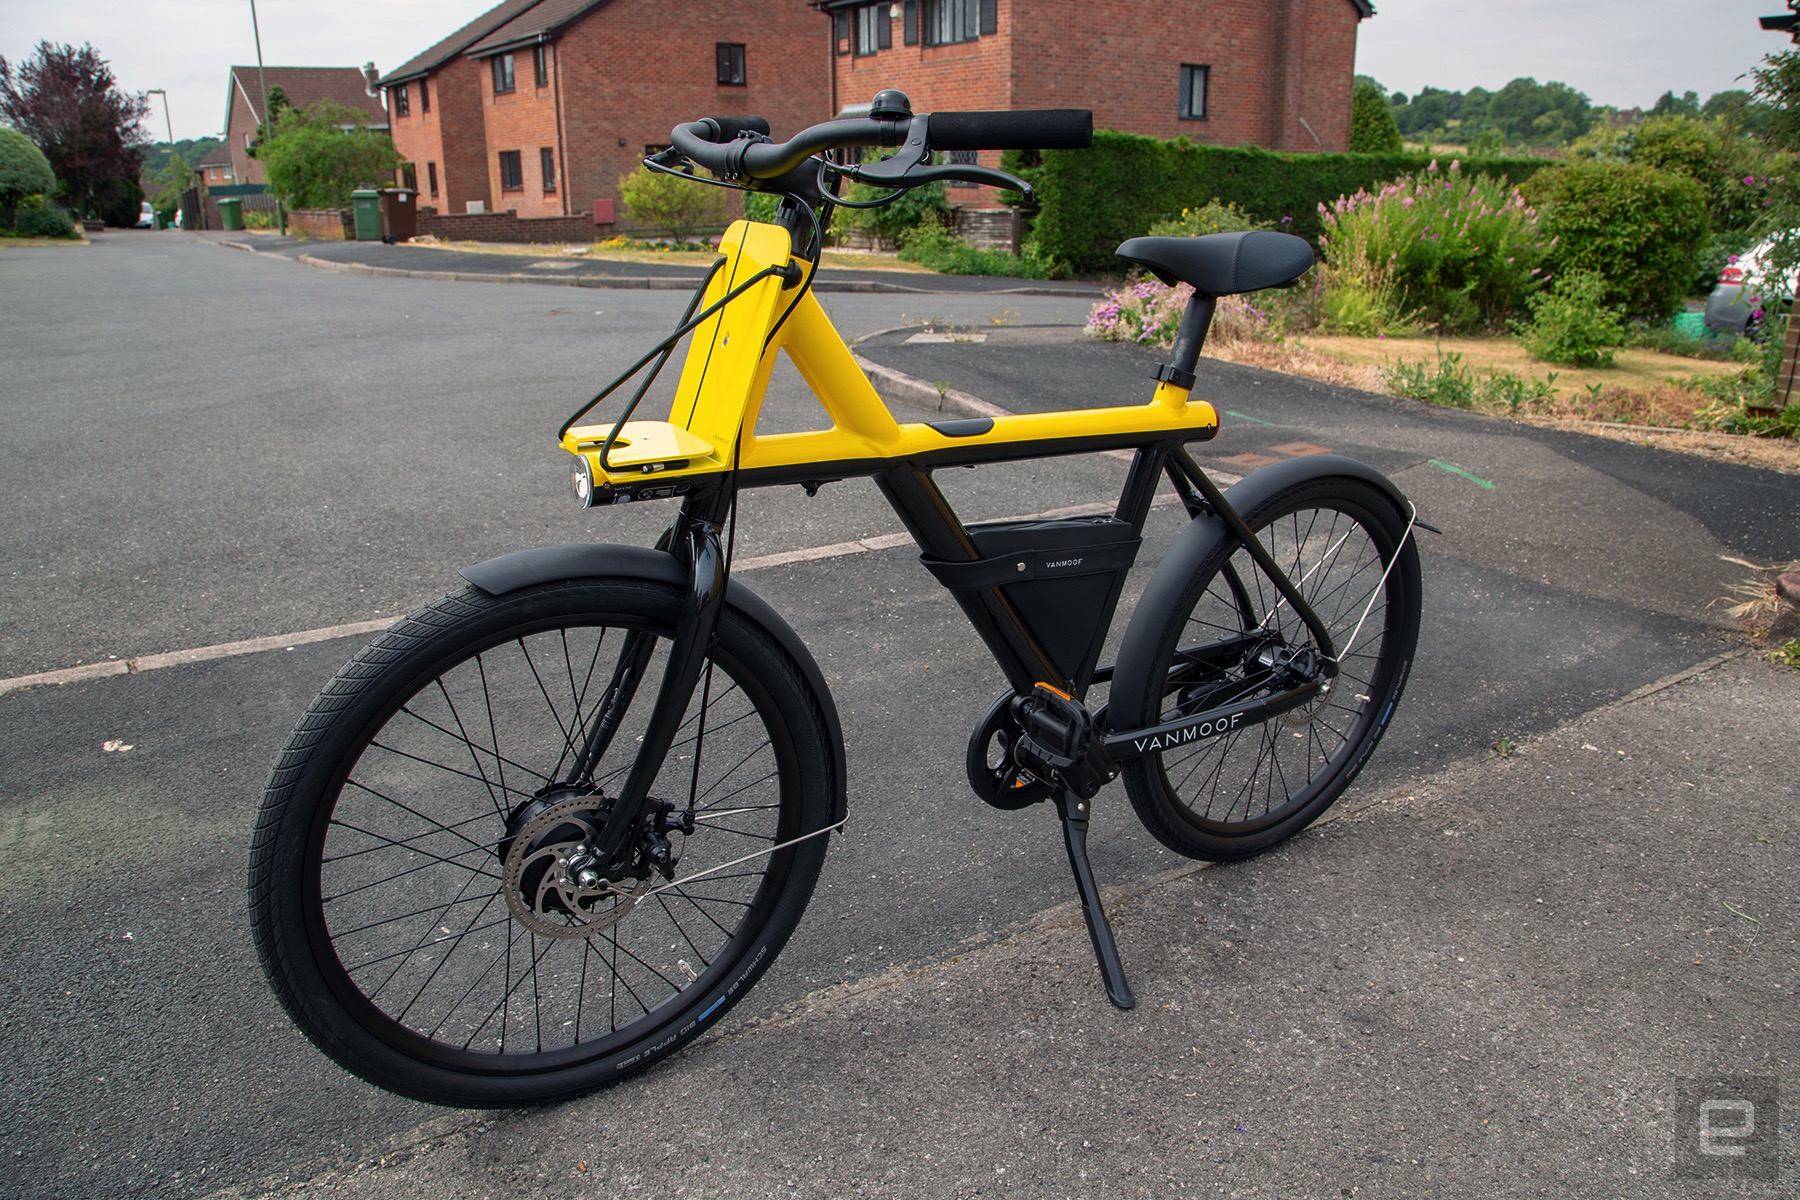 VanMoof's Electrified X cured my fear of bike thieves